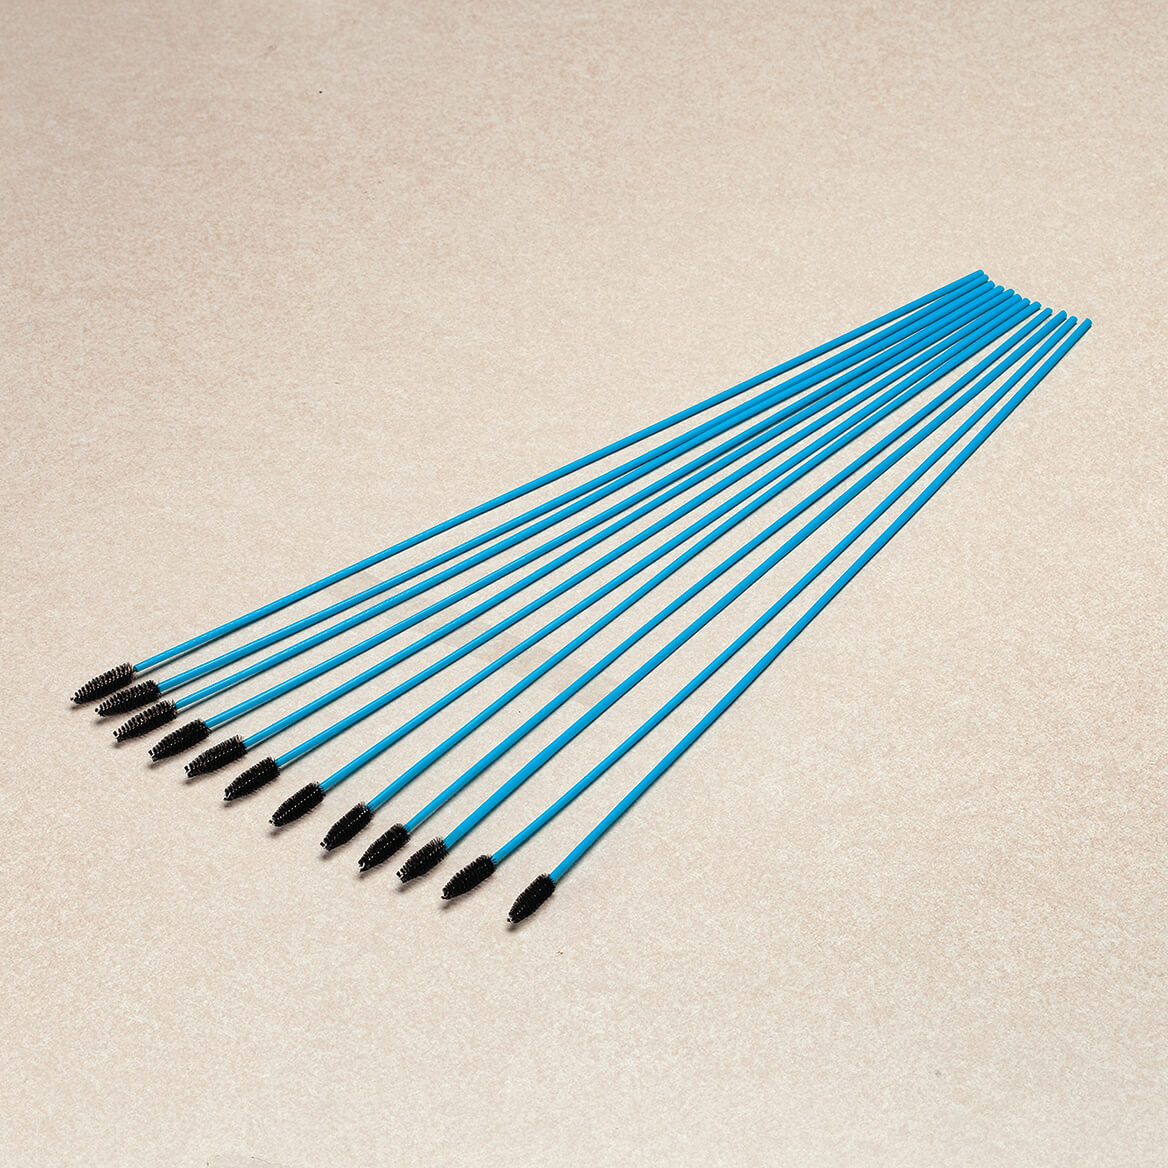 Flexible Drain Cleaning Stick, Set of 12-370736